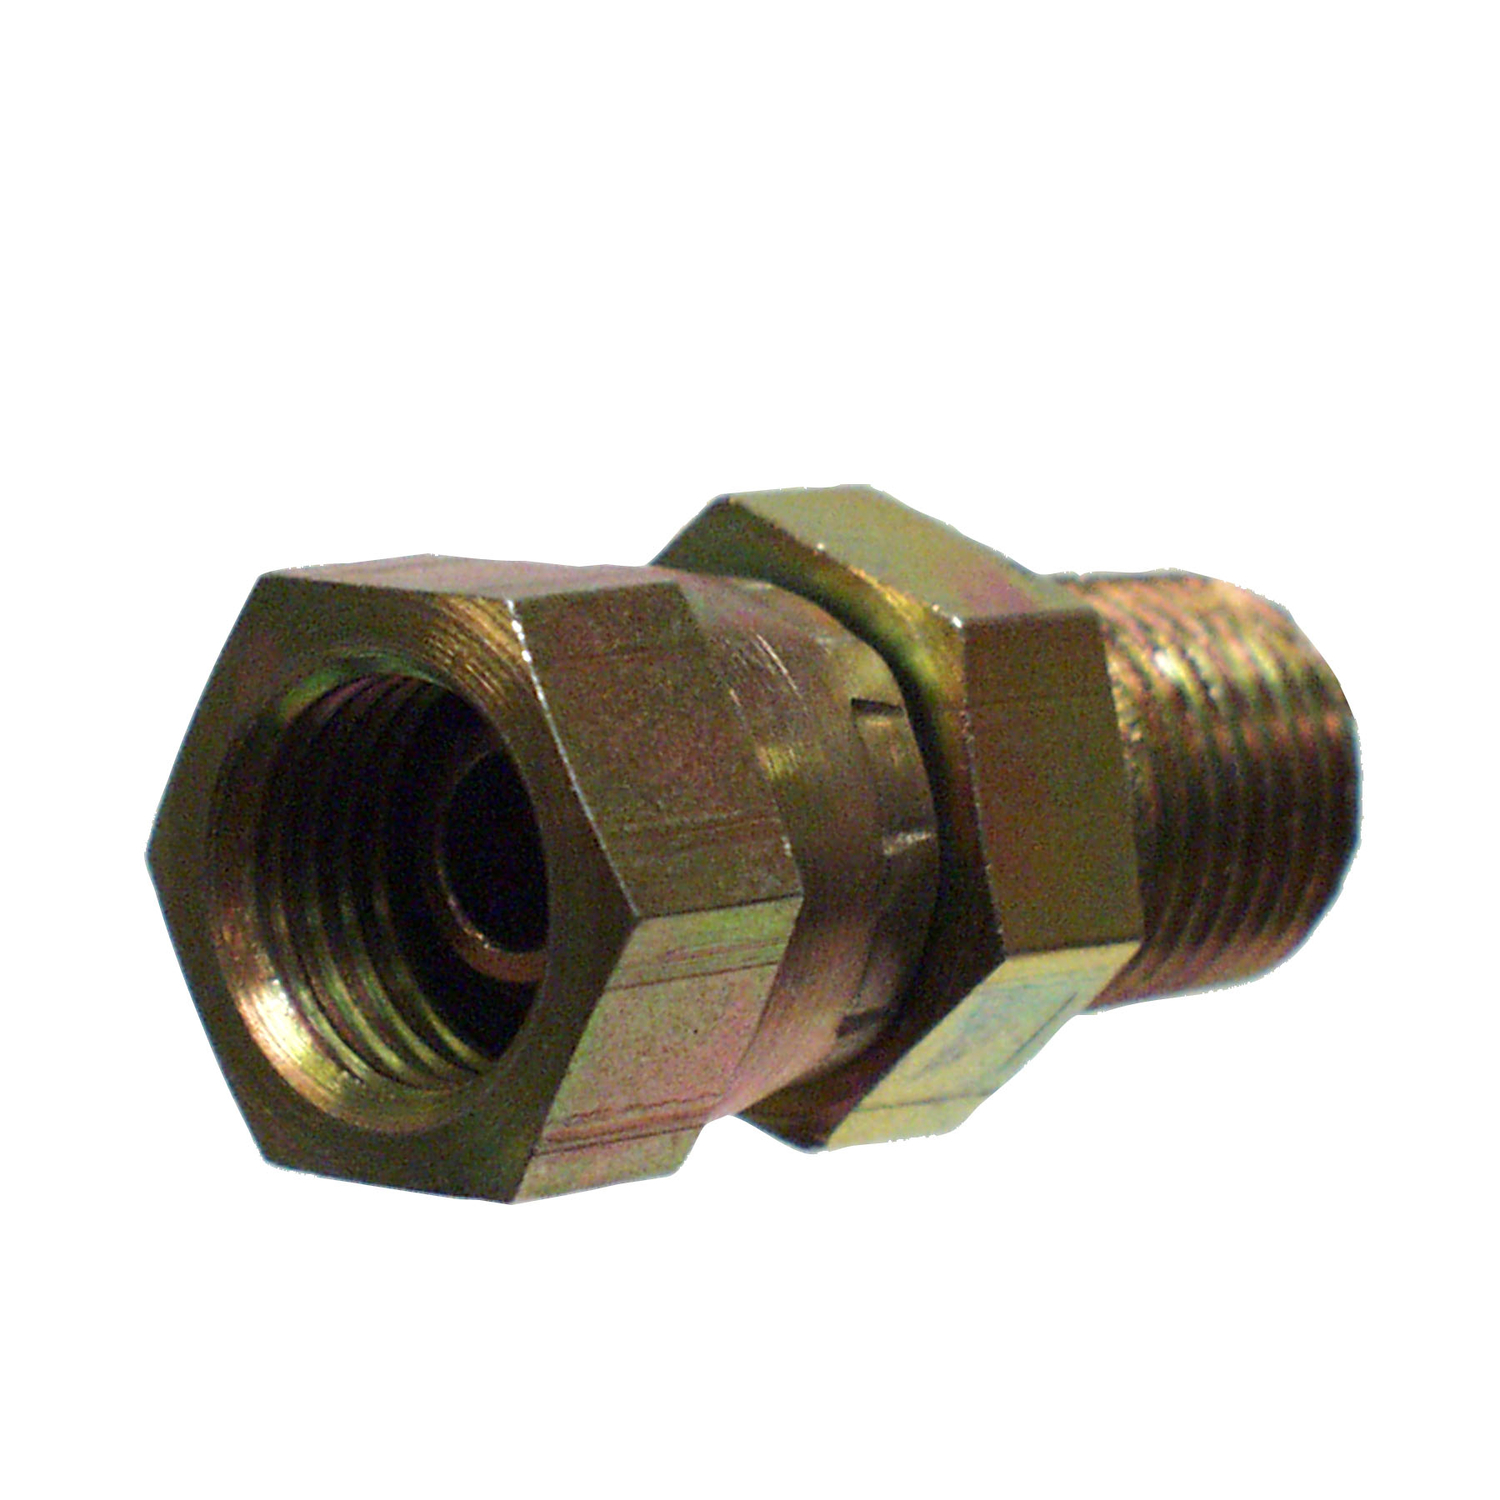 Universal  Steel  Hydraulic Adapter  1/4 in. Dia. x 3/8 in. Dia. 1